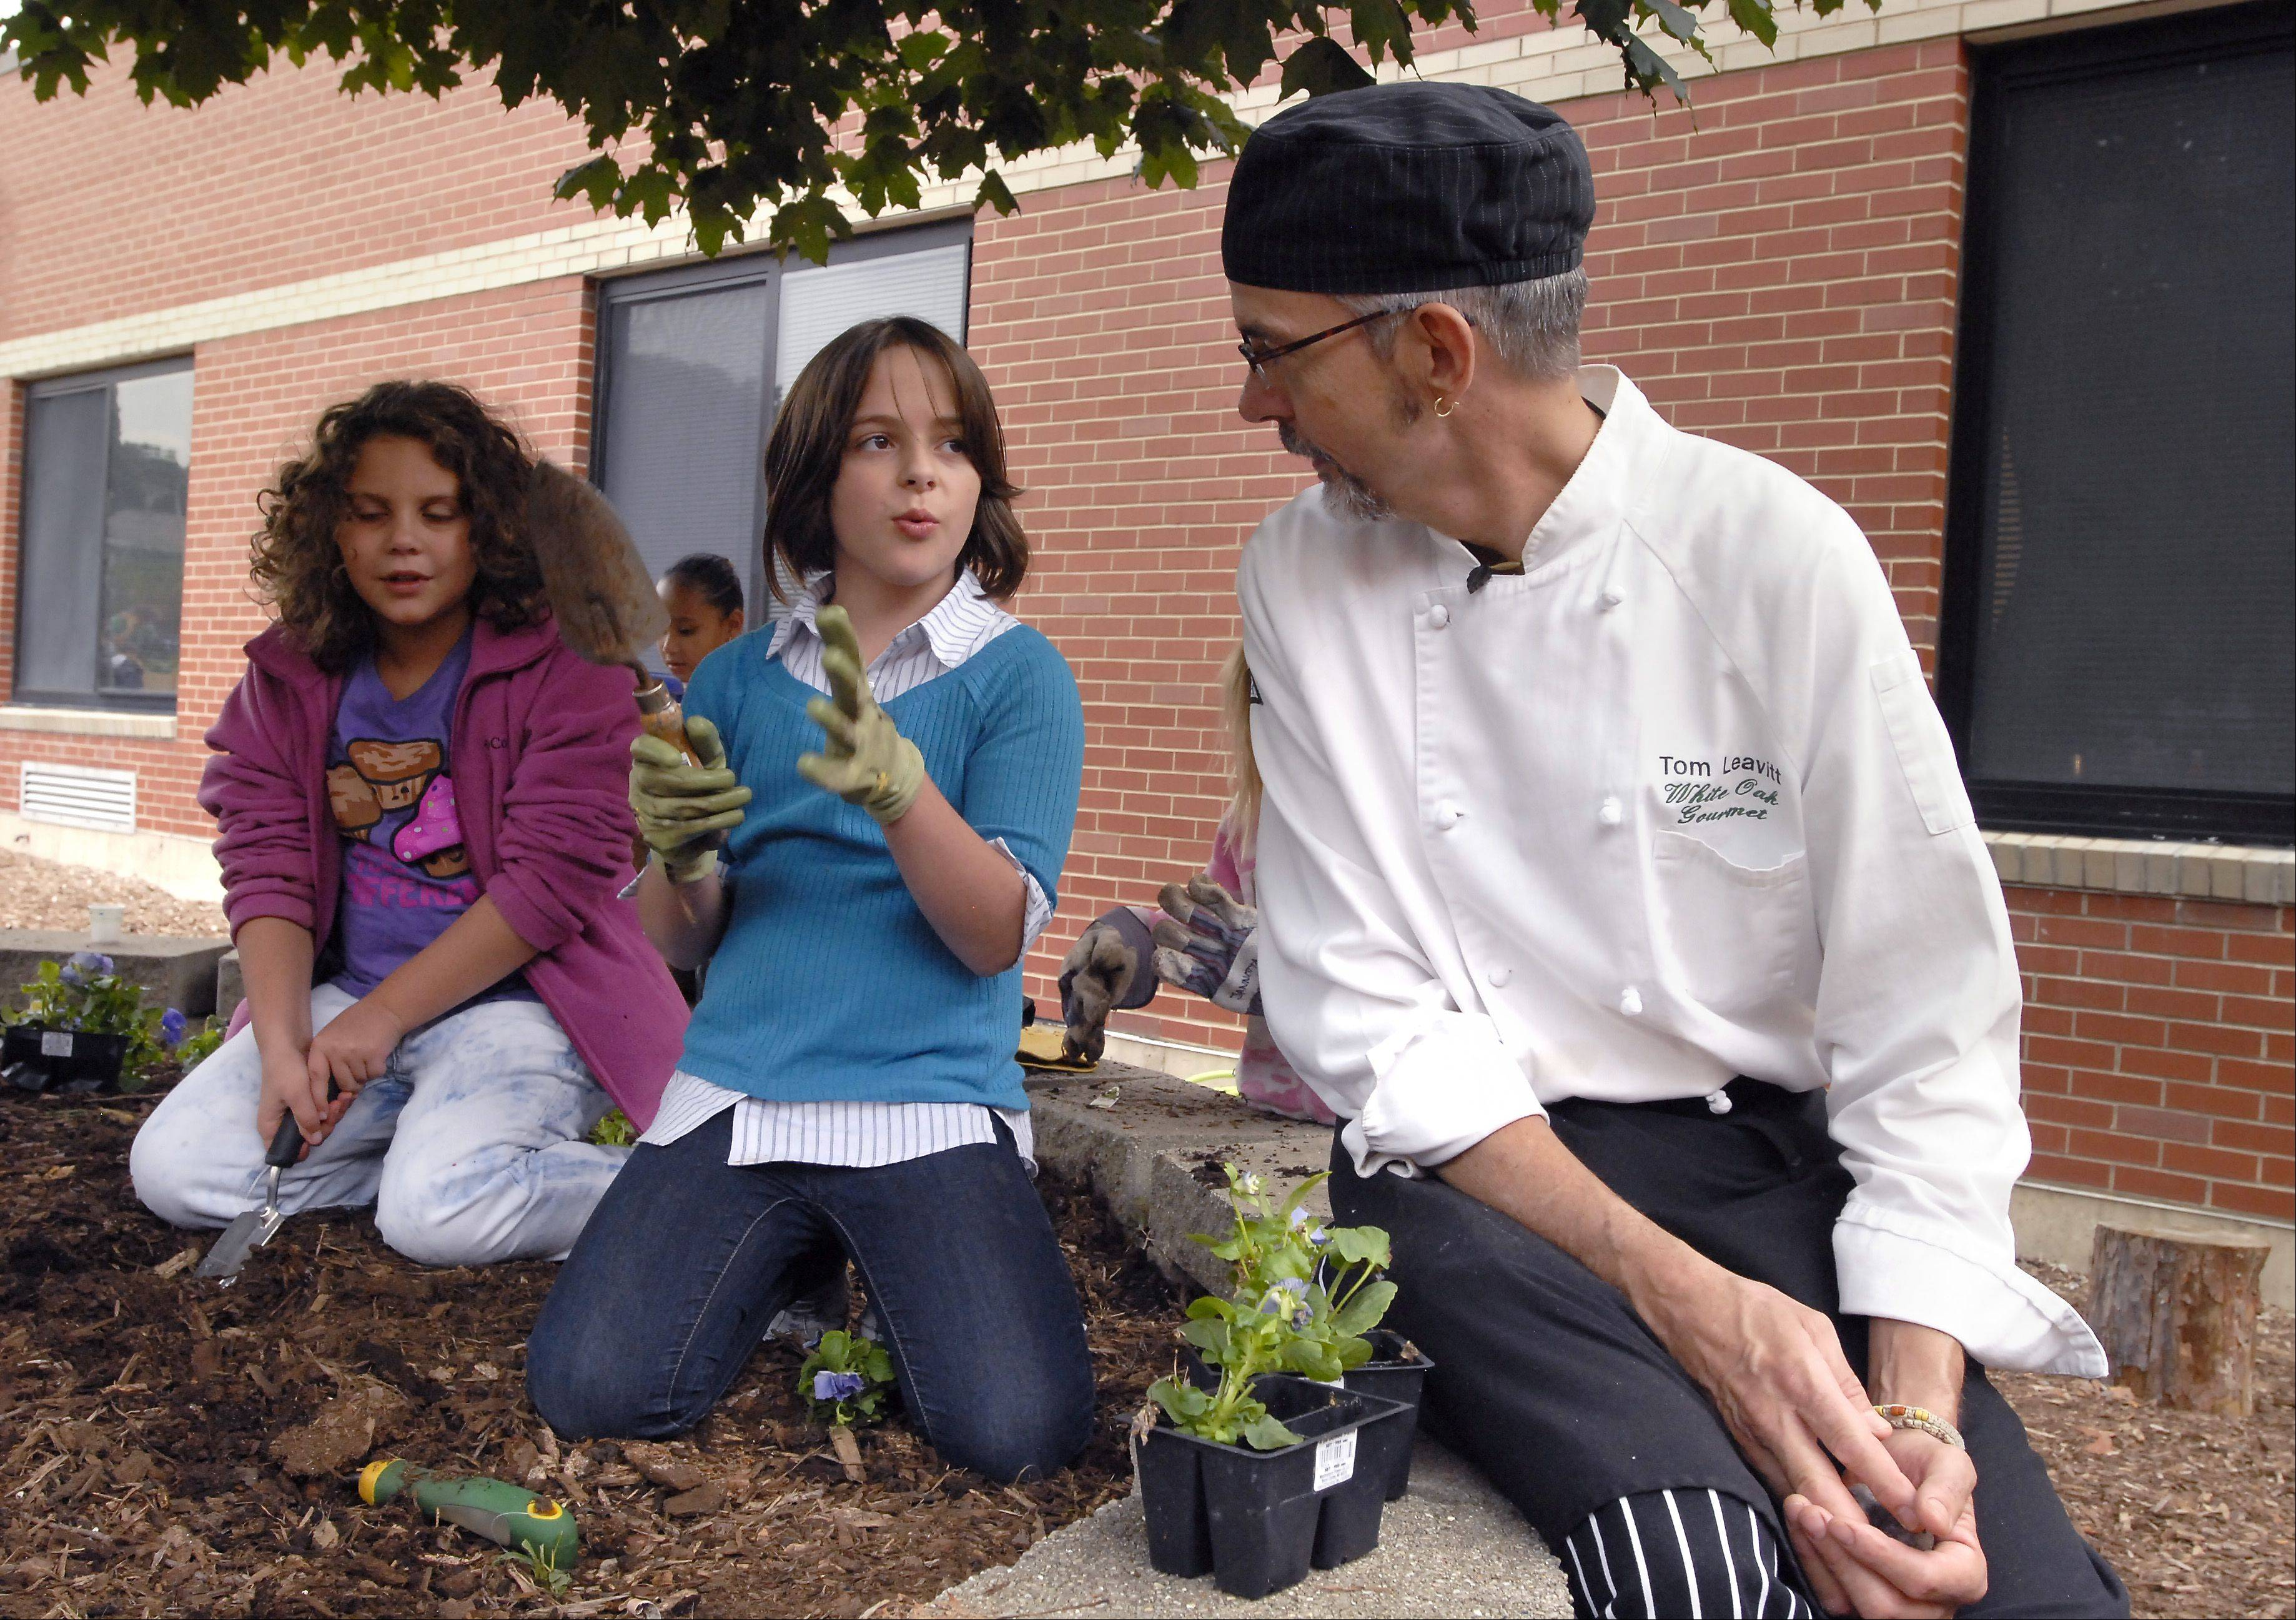 Third-graders Gaby Whisler, left, and Mary Lazzaretti talk with Chef Thomas Leavitt.